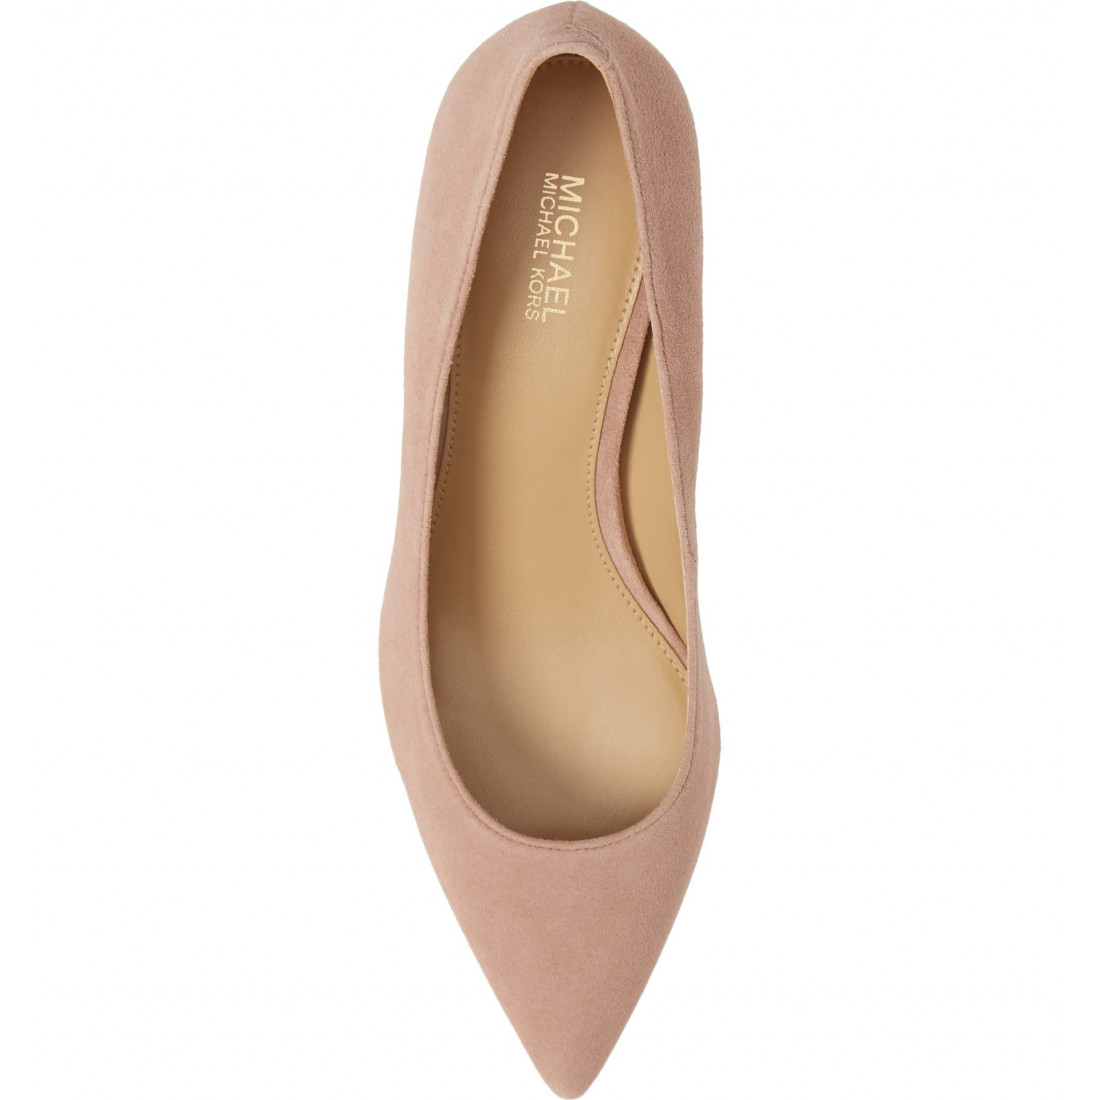 pumps woman michael kors 40r0pemp1s137 6558